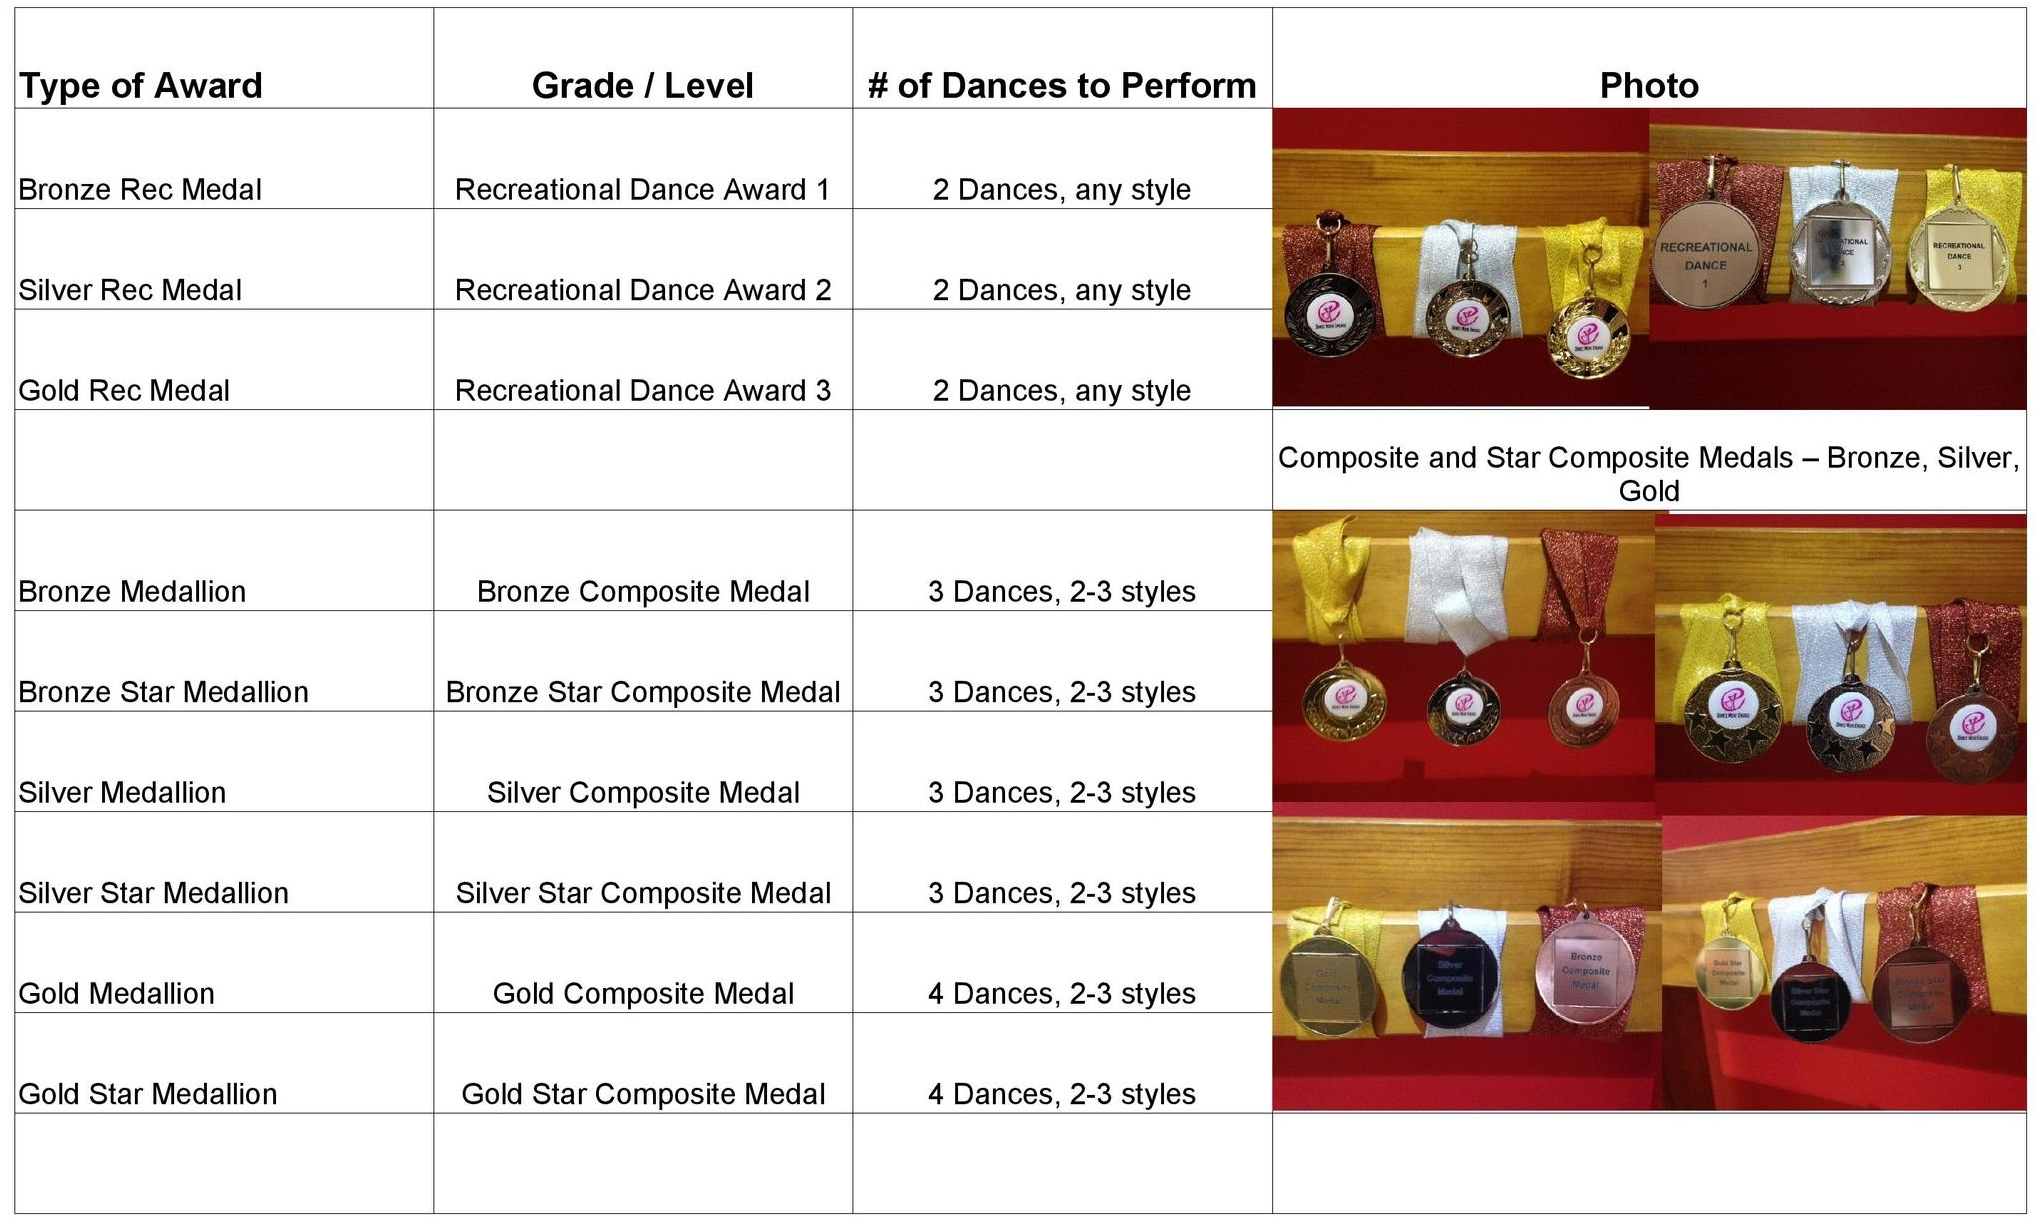 Assessment Awards-Medals-Trophies (3)-page-001.jpg